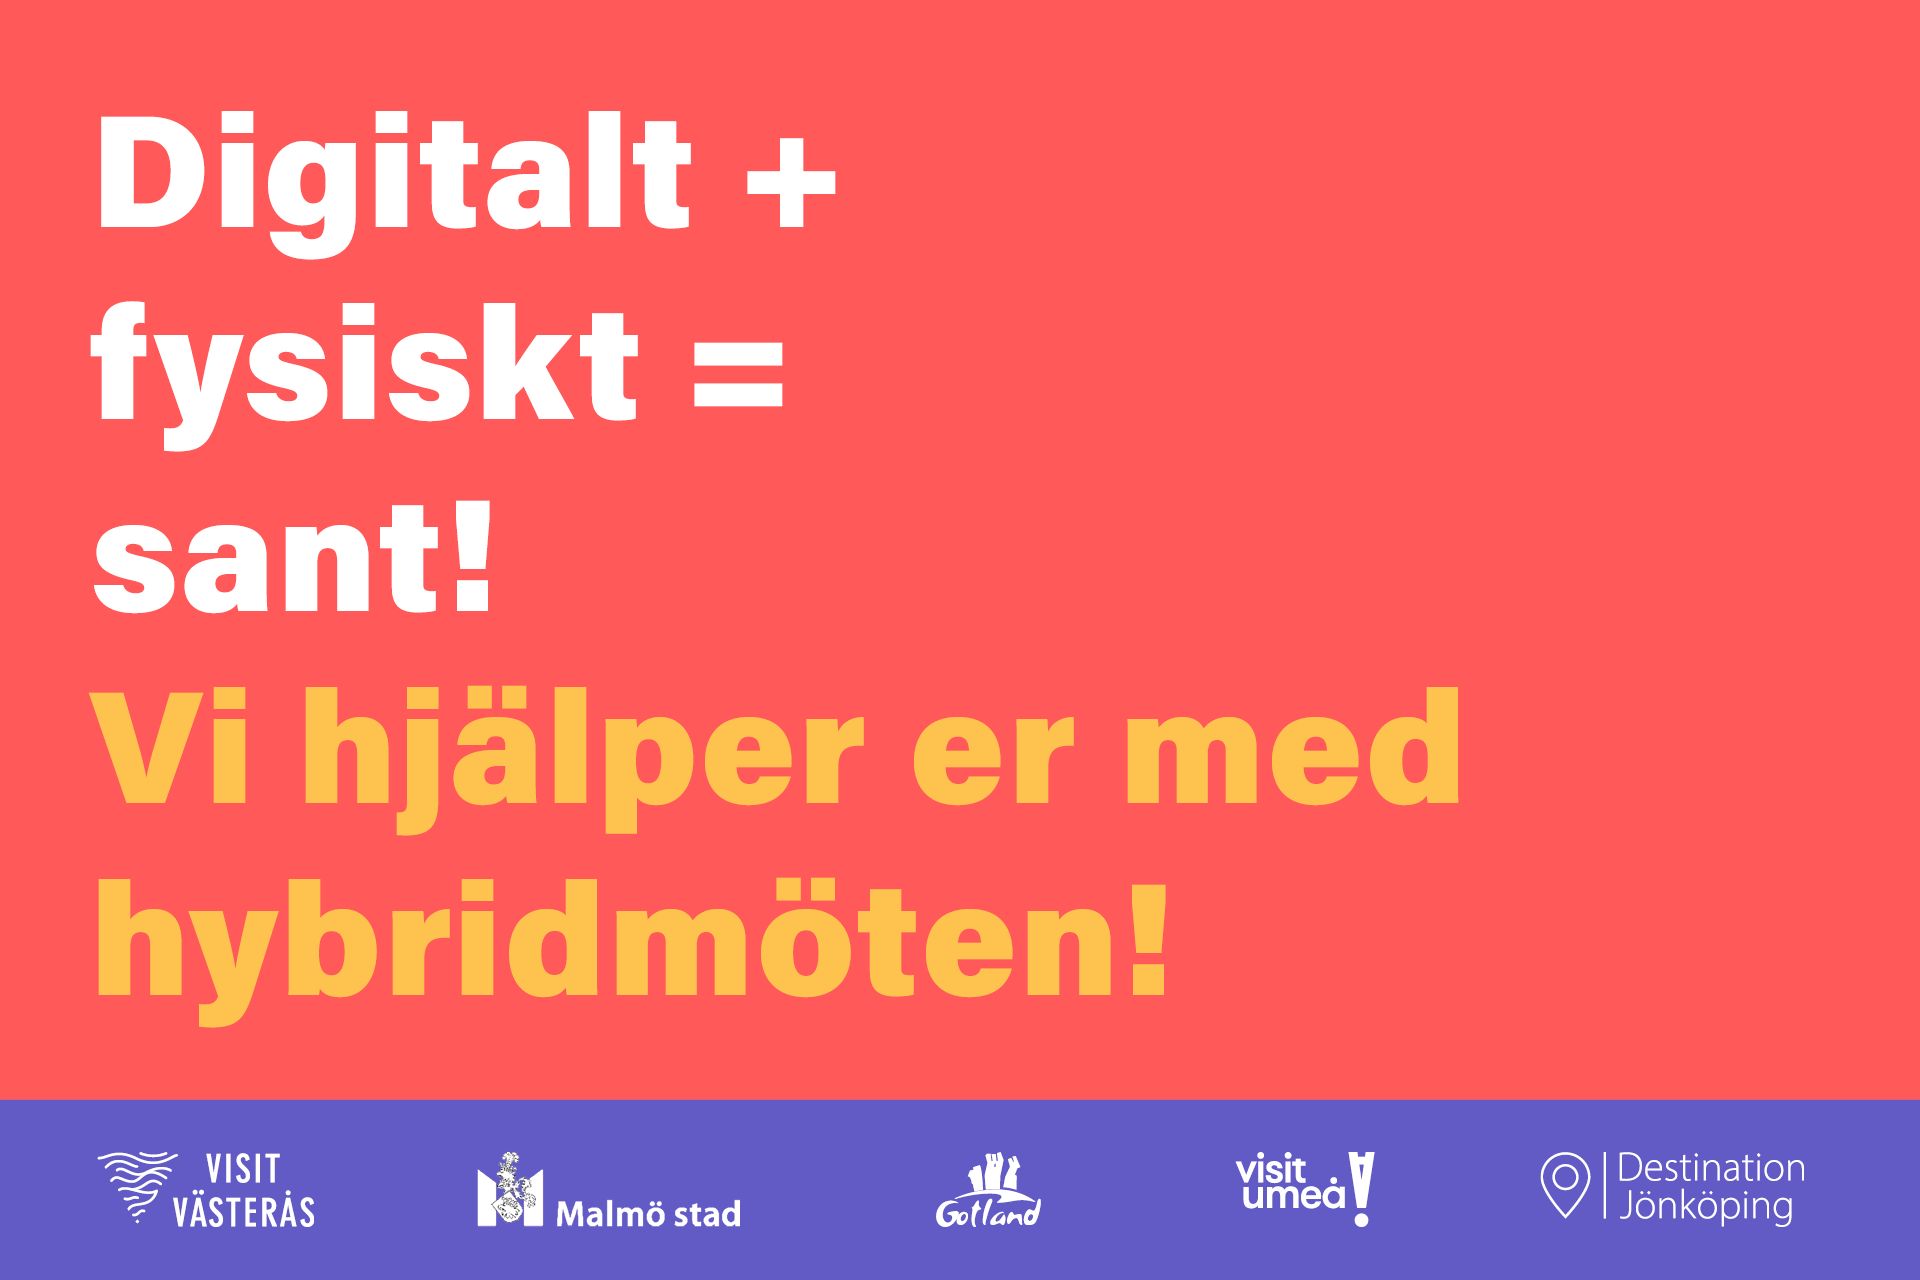 Illustration: Digitalt + fysiskt = sant!